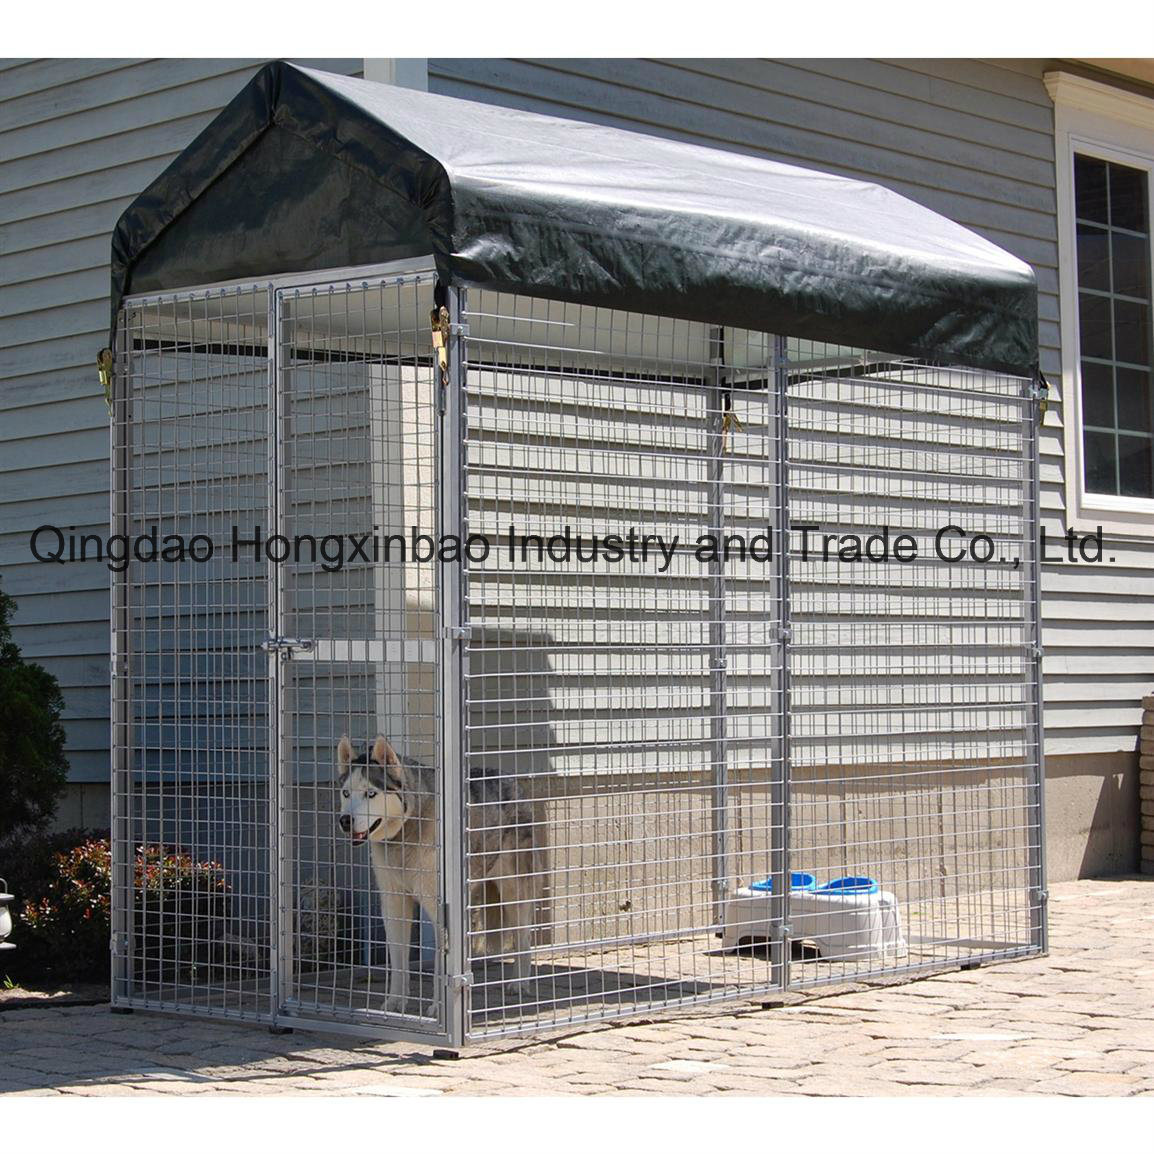 Galvanized Wleded Wire Mesh Filled Outdoor Dog Fence/Dog Kennel/Dog Cage